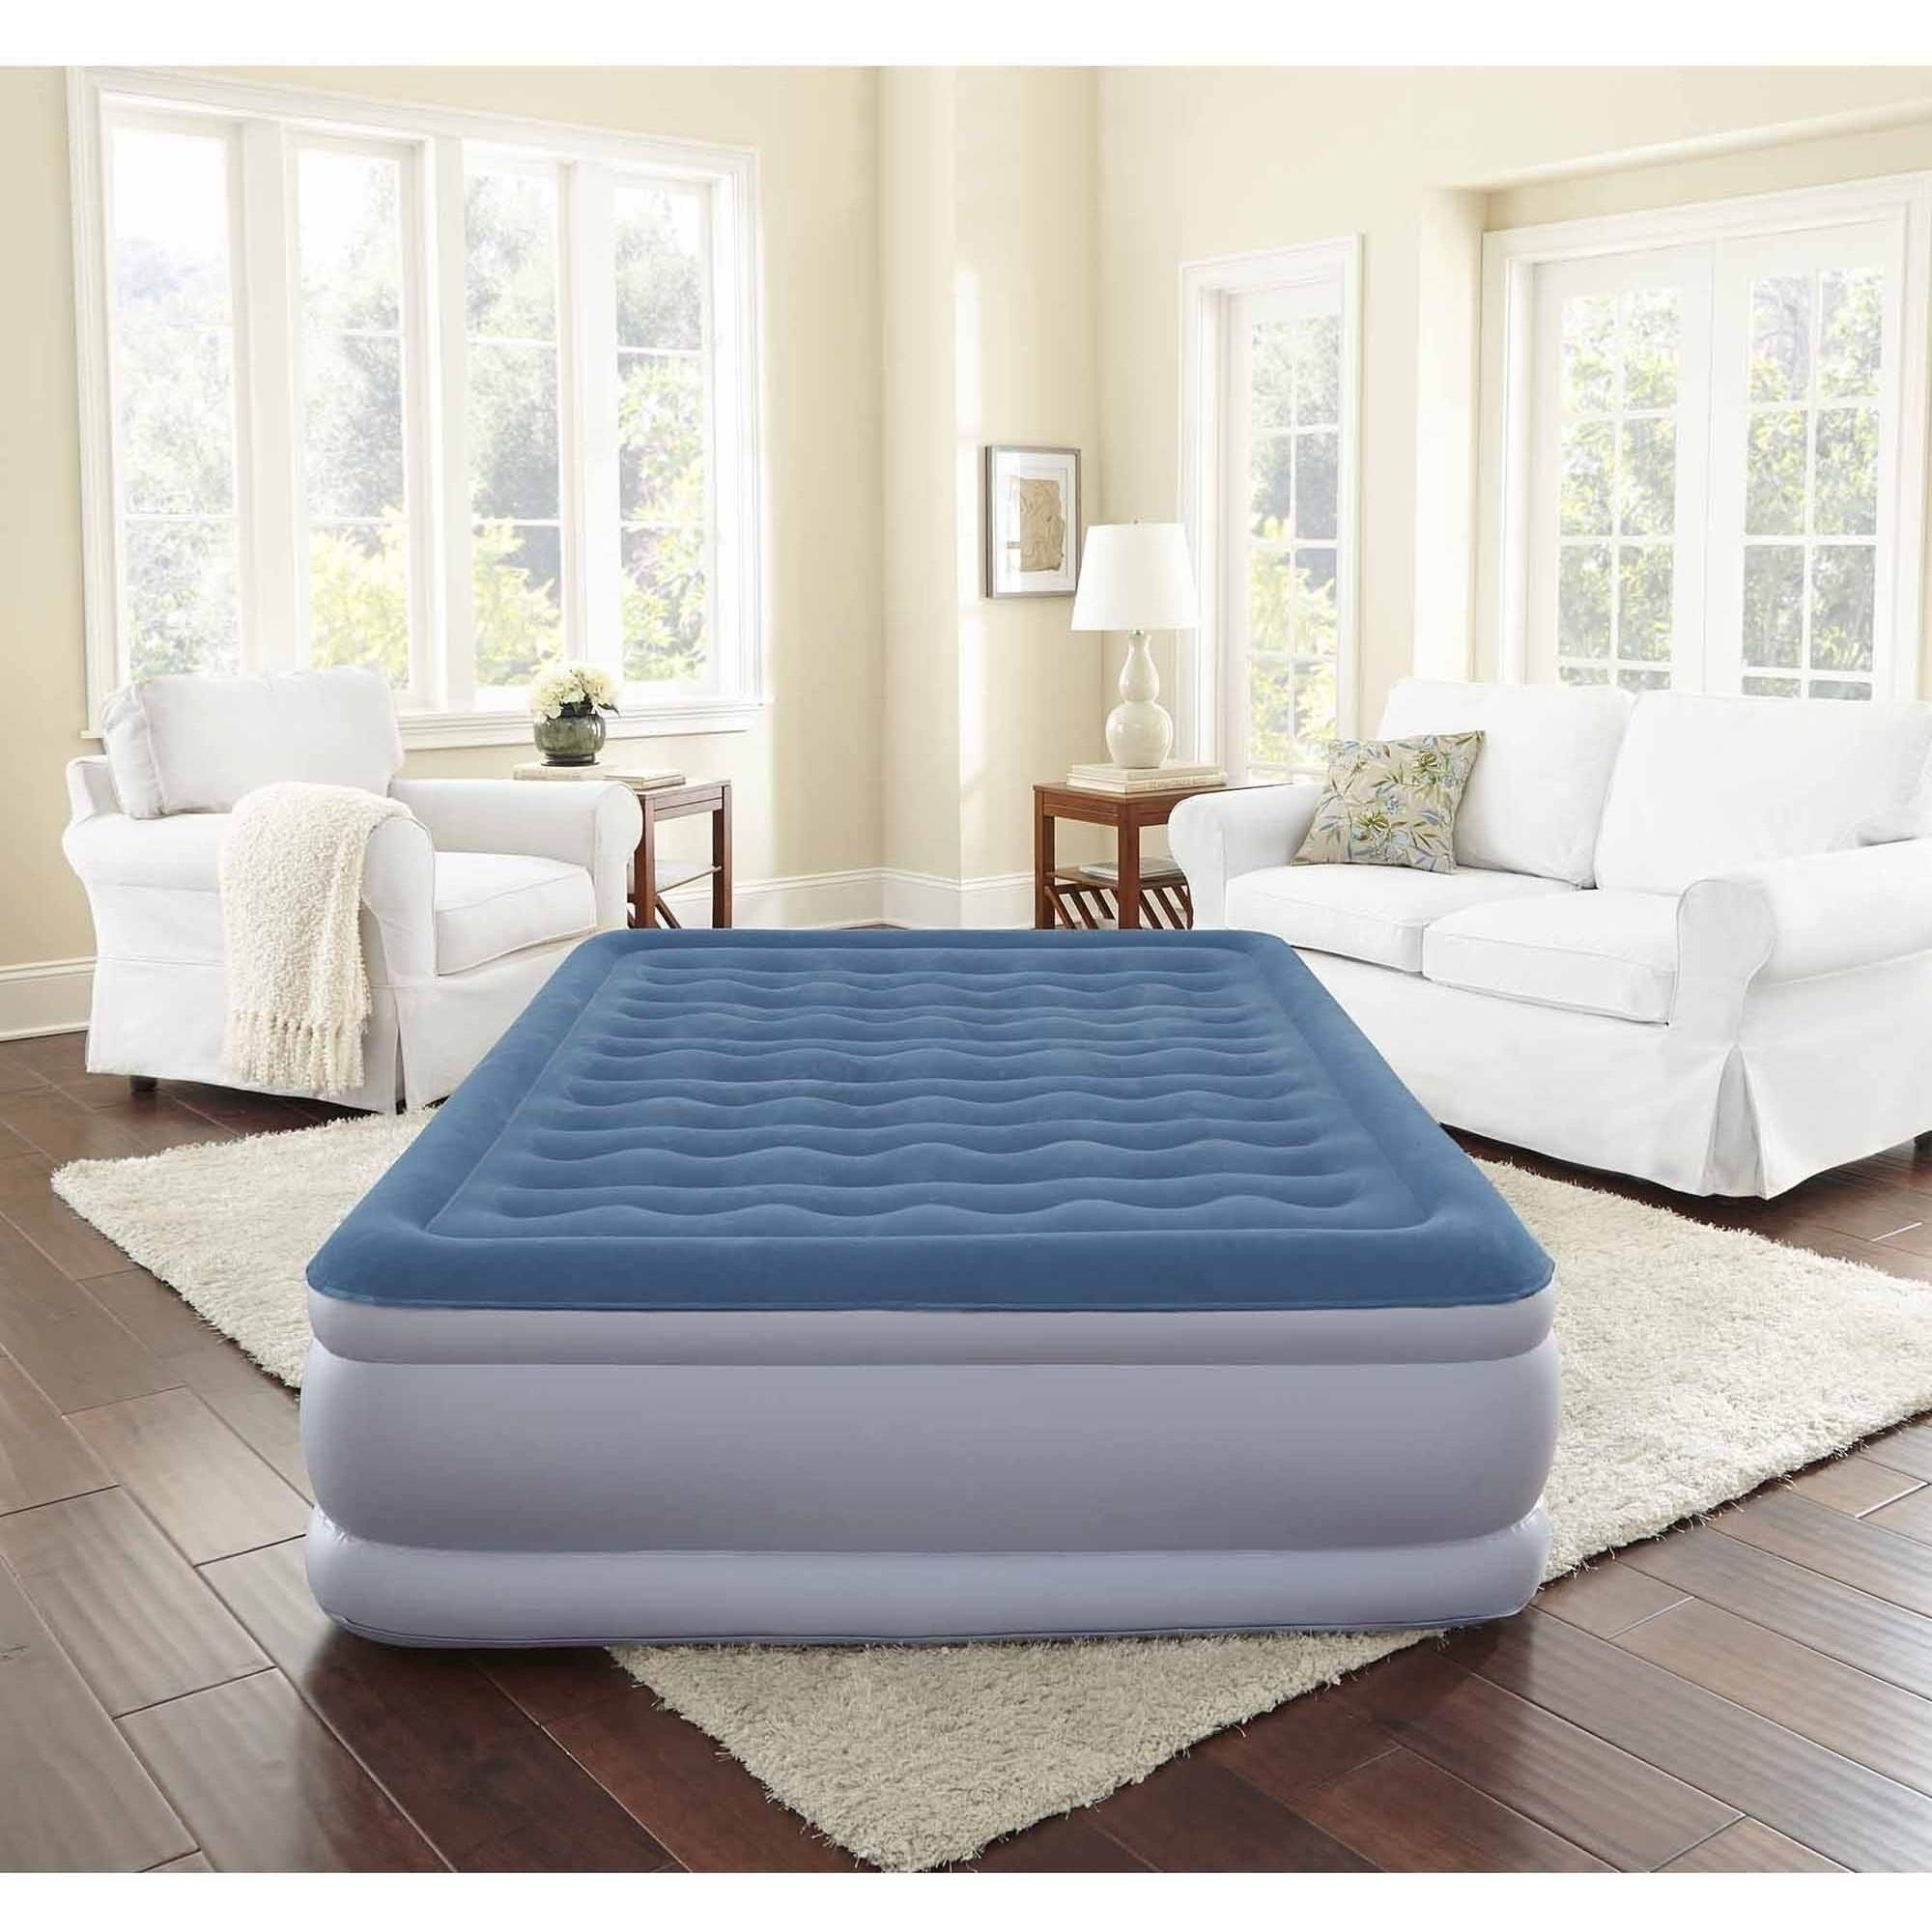 Air Mattress Frame Queen Beautyrest Silver Extraordinaire Raised Air Mattress With Iflex Support Internal Pump Multiple Sizes 1 Each